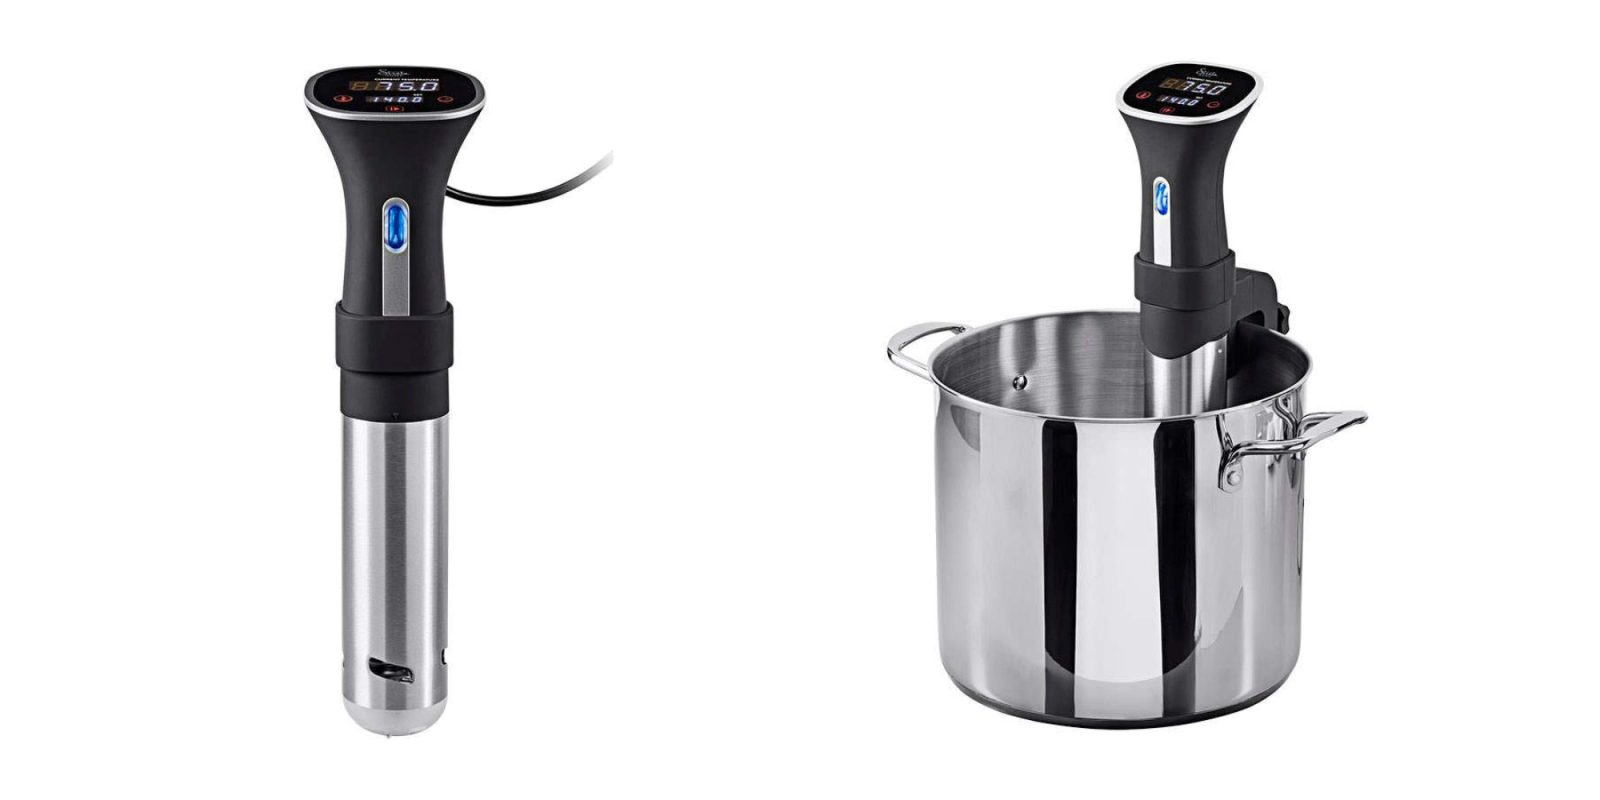 Let Monoprice's Sous Vide Cooker do most of the work for you: $49 (Reg. $70)